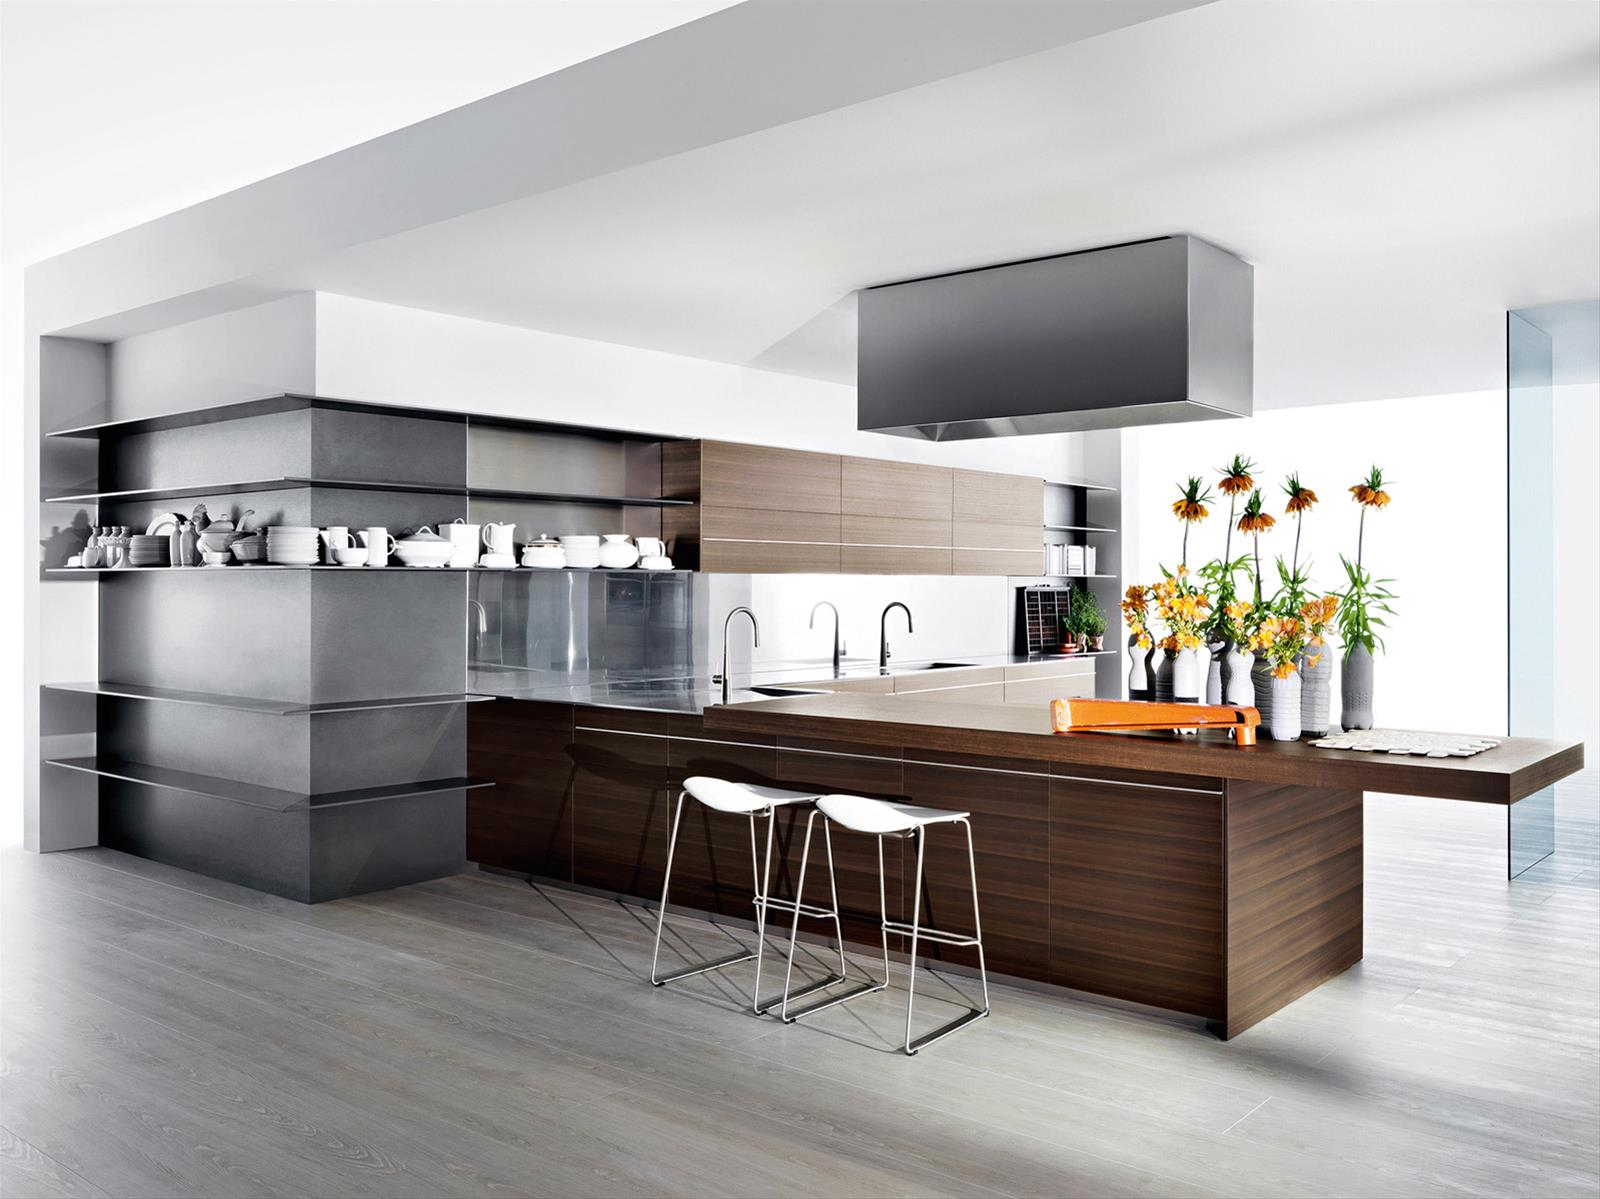 Cucina In Dada Vela Dada Kitchens Italian Design Kitchens